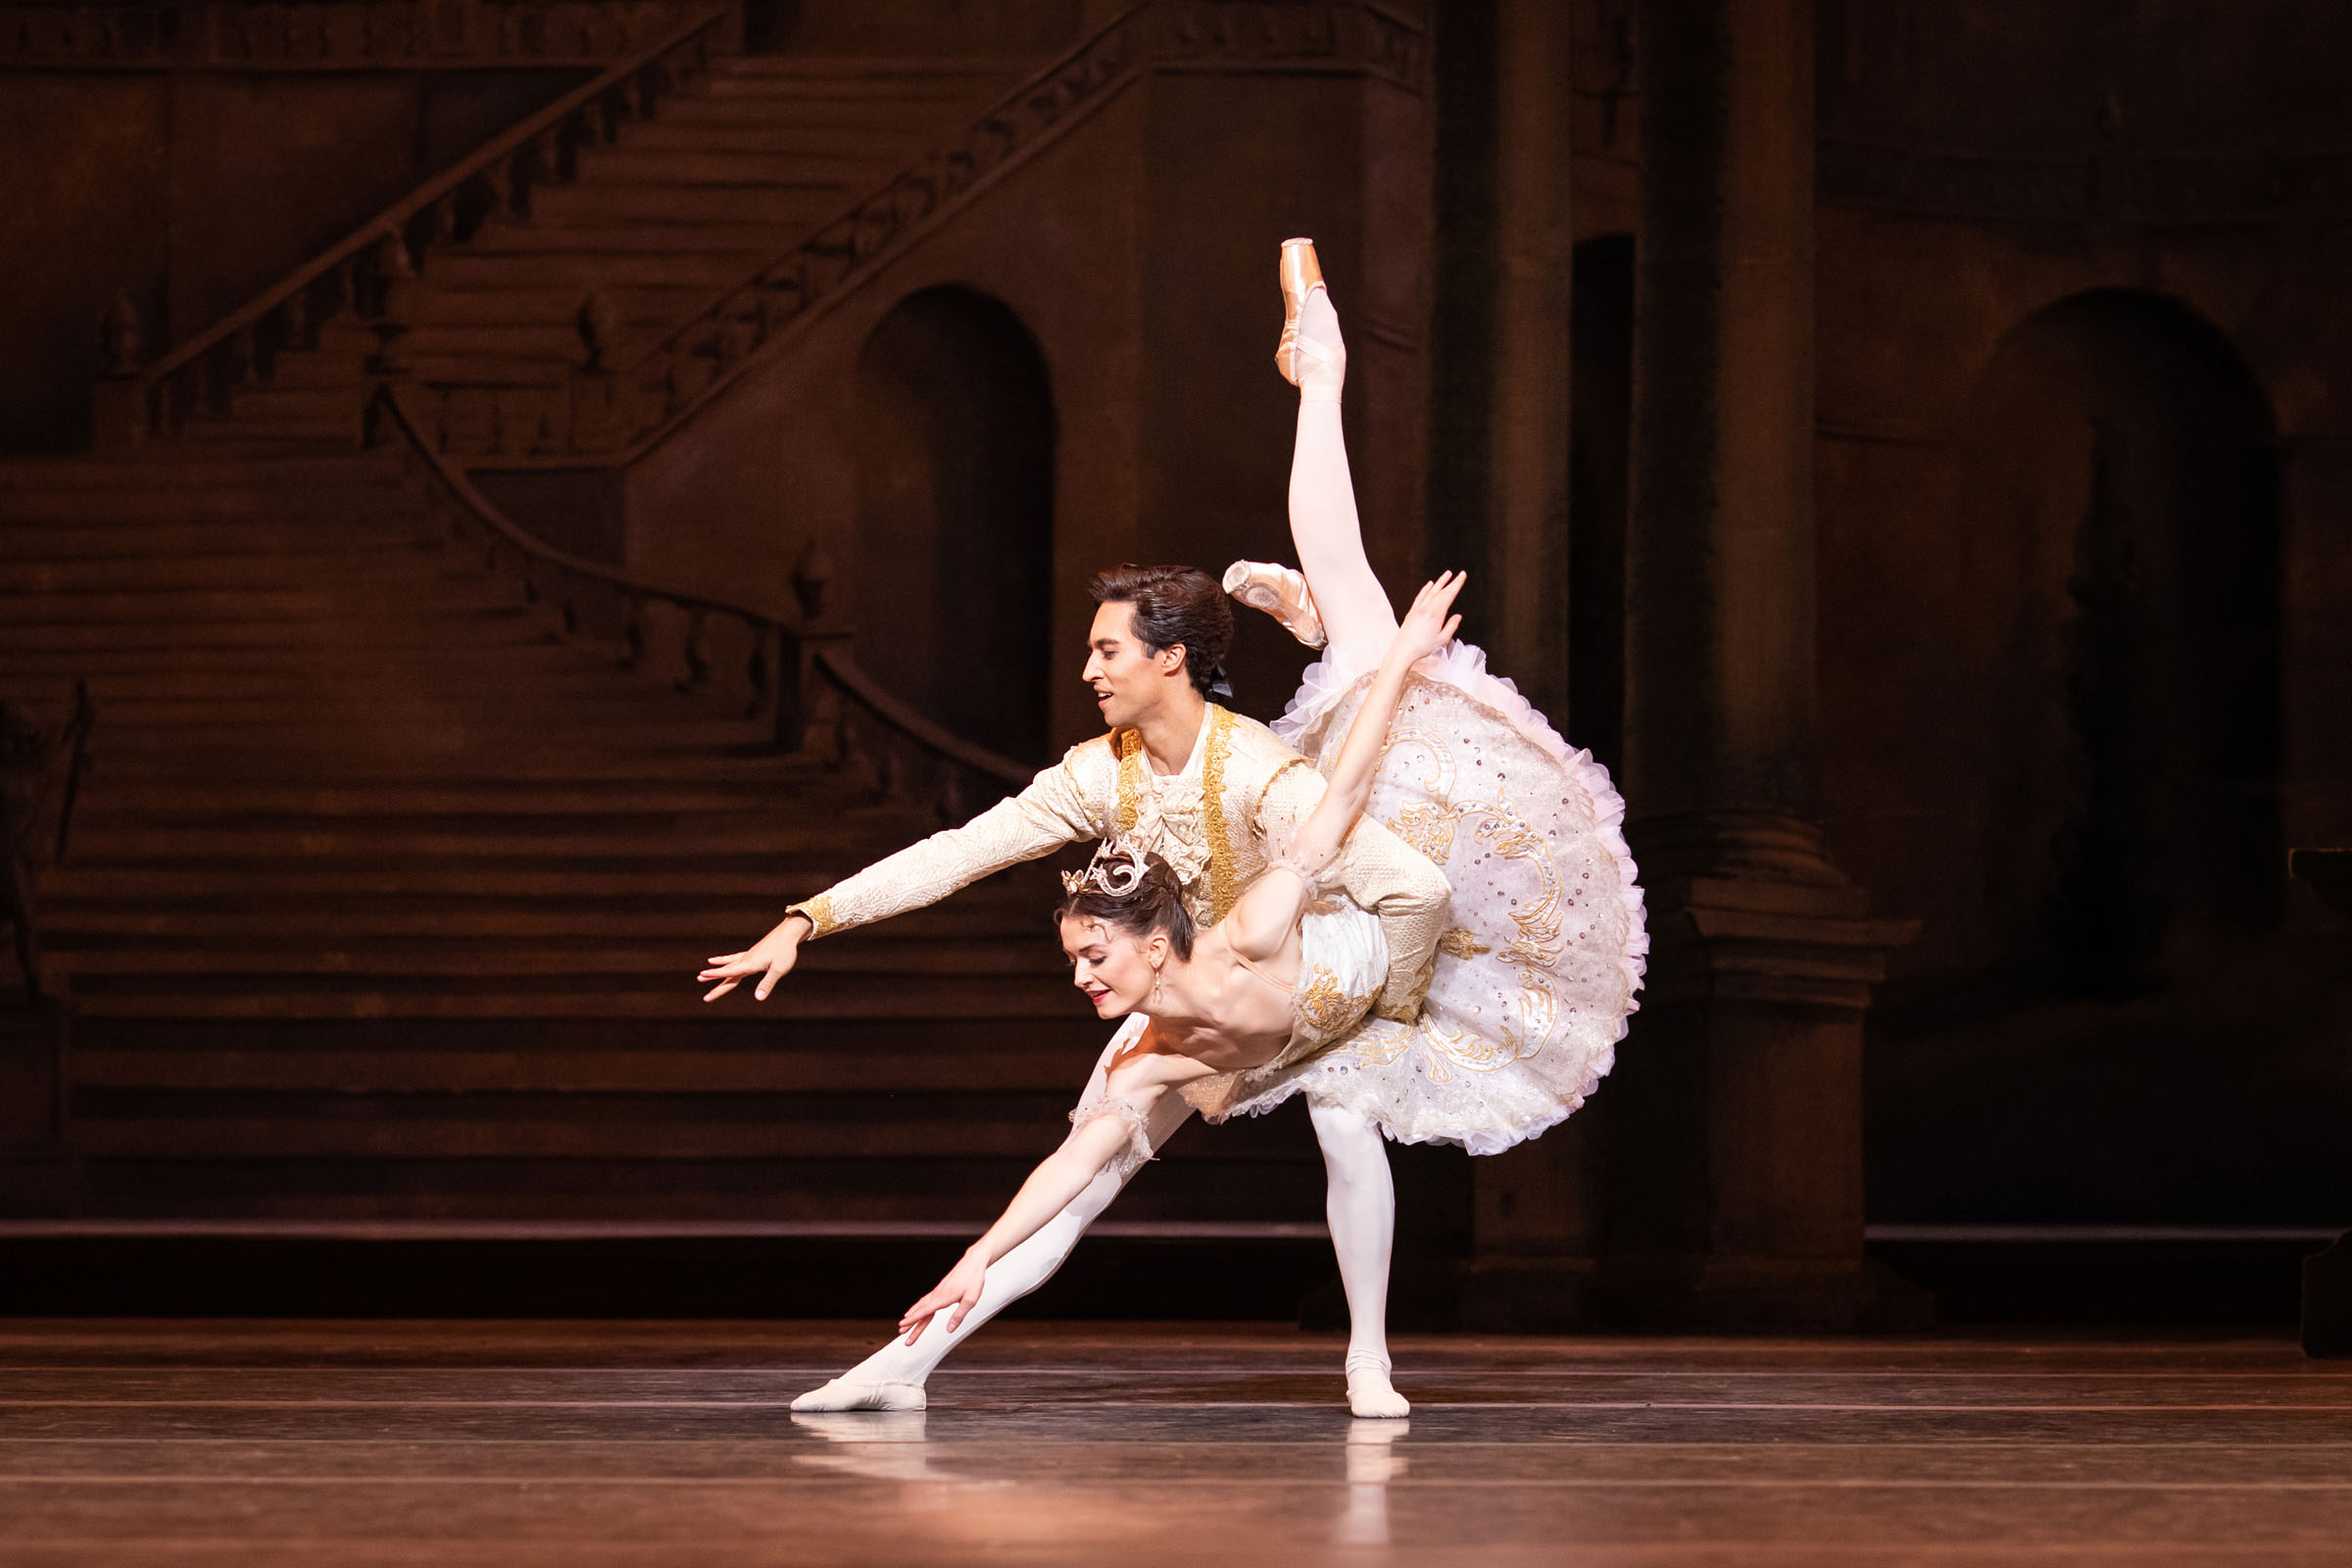 James Hay as Prince Florimund and Anna Rose O'Sullivan as Princess Aurora in The Sleeping Beauty